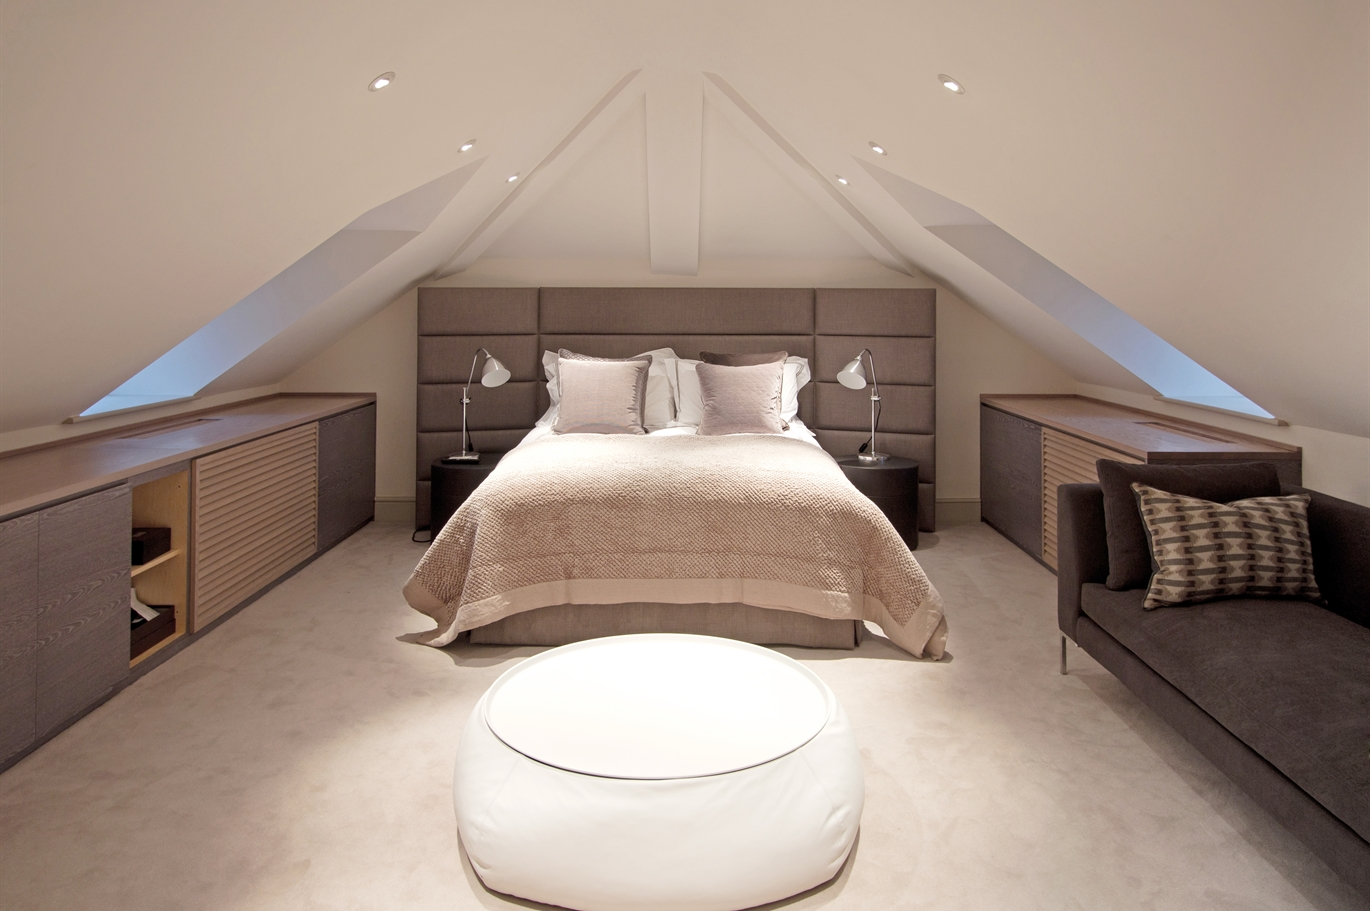 Image of a modern loft conversion bedroom example